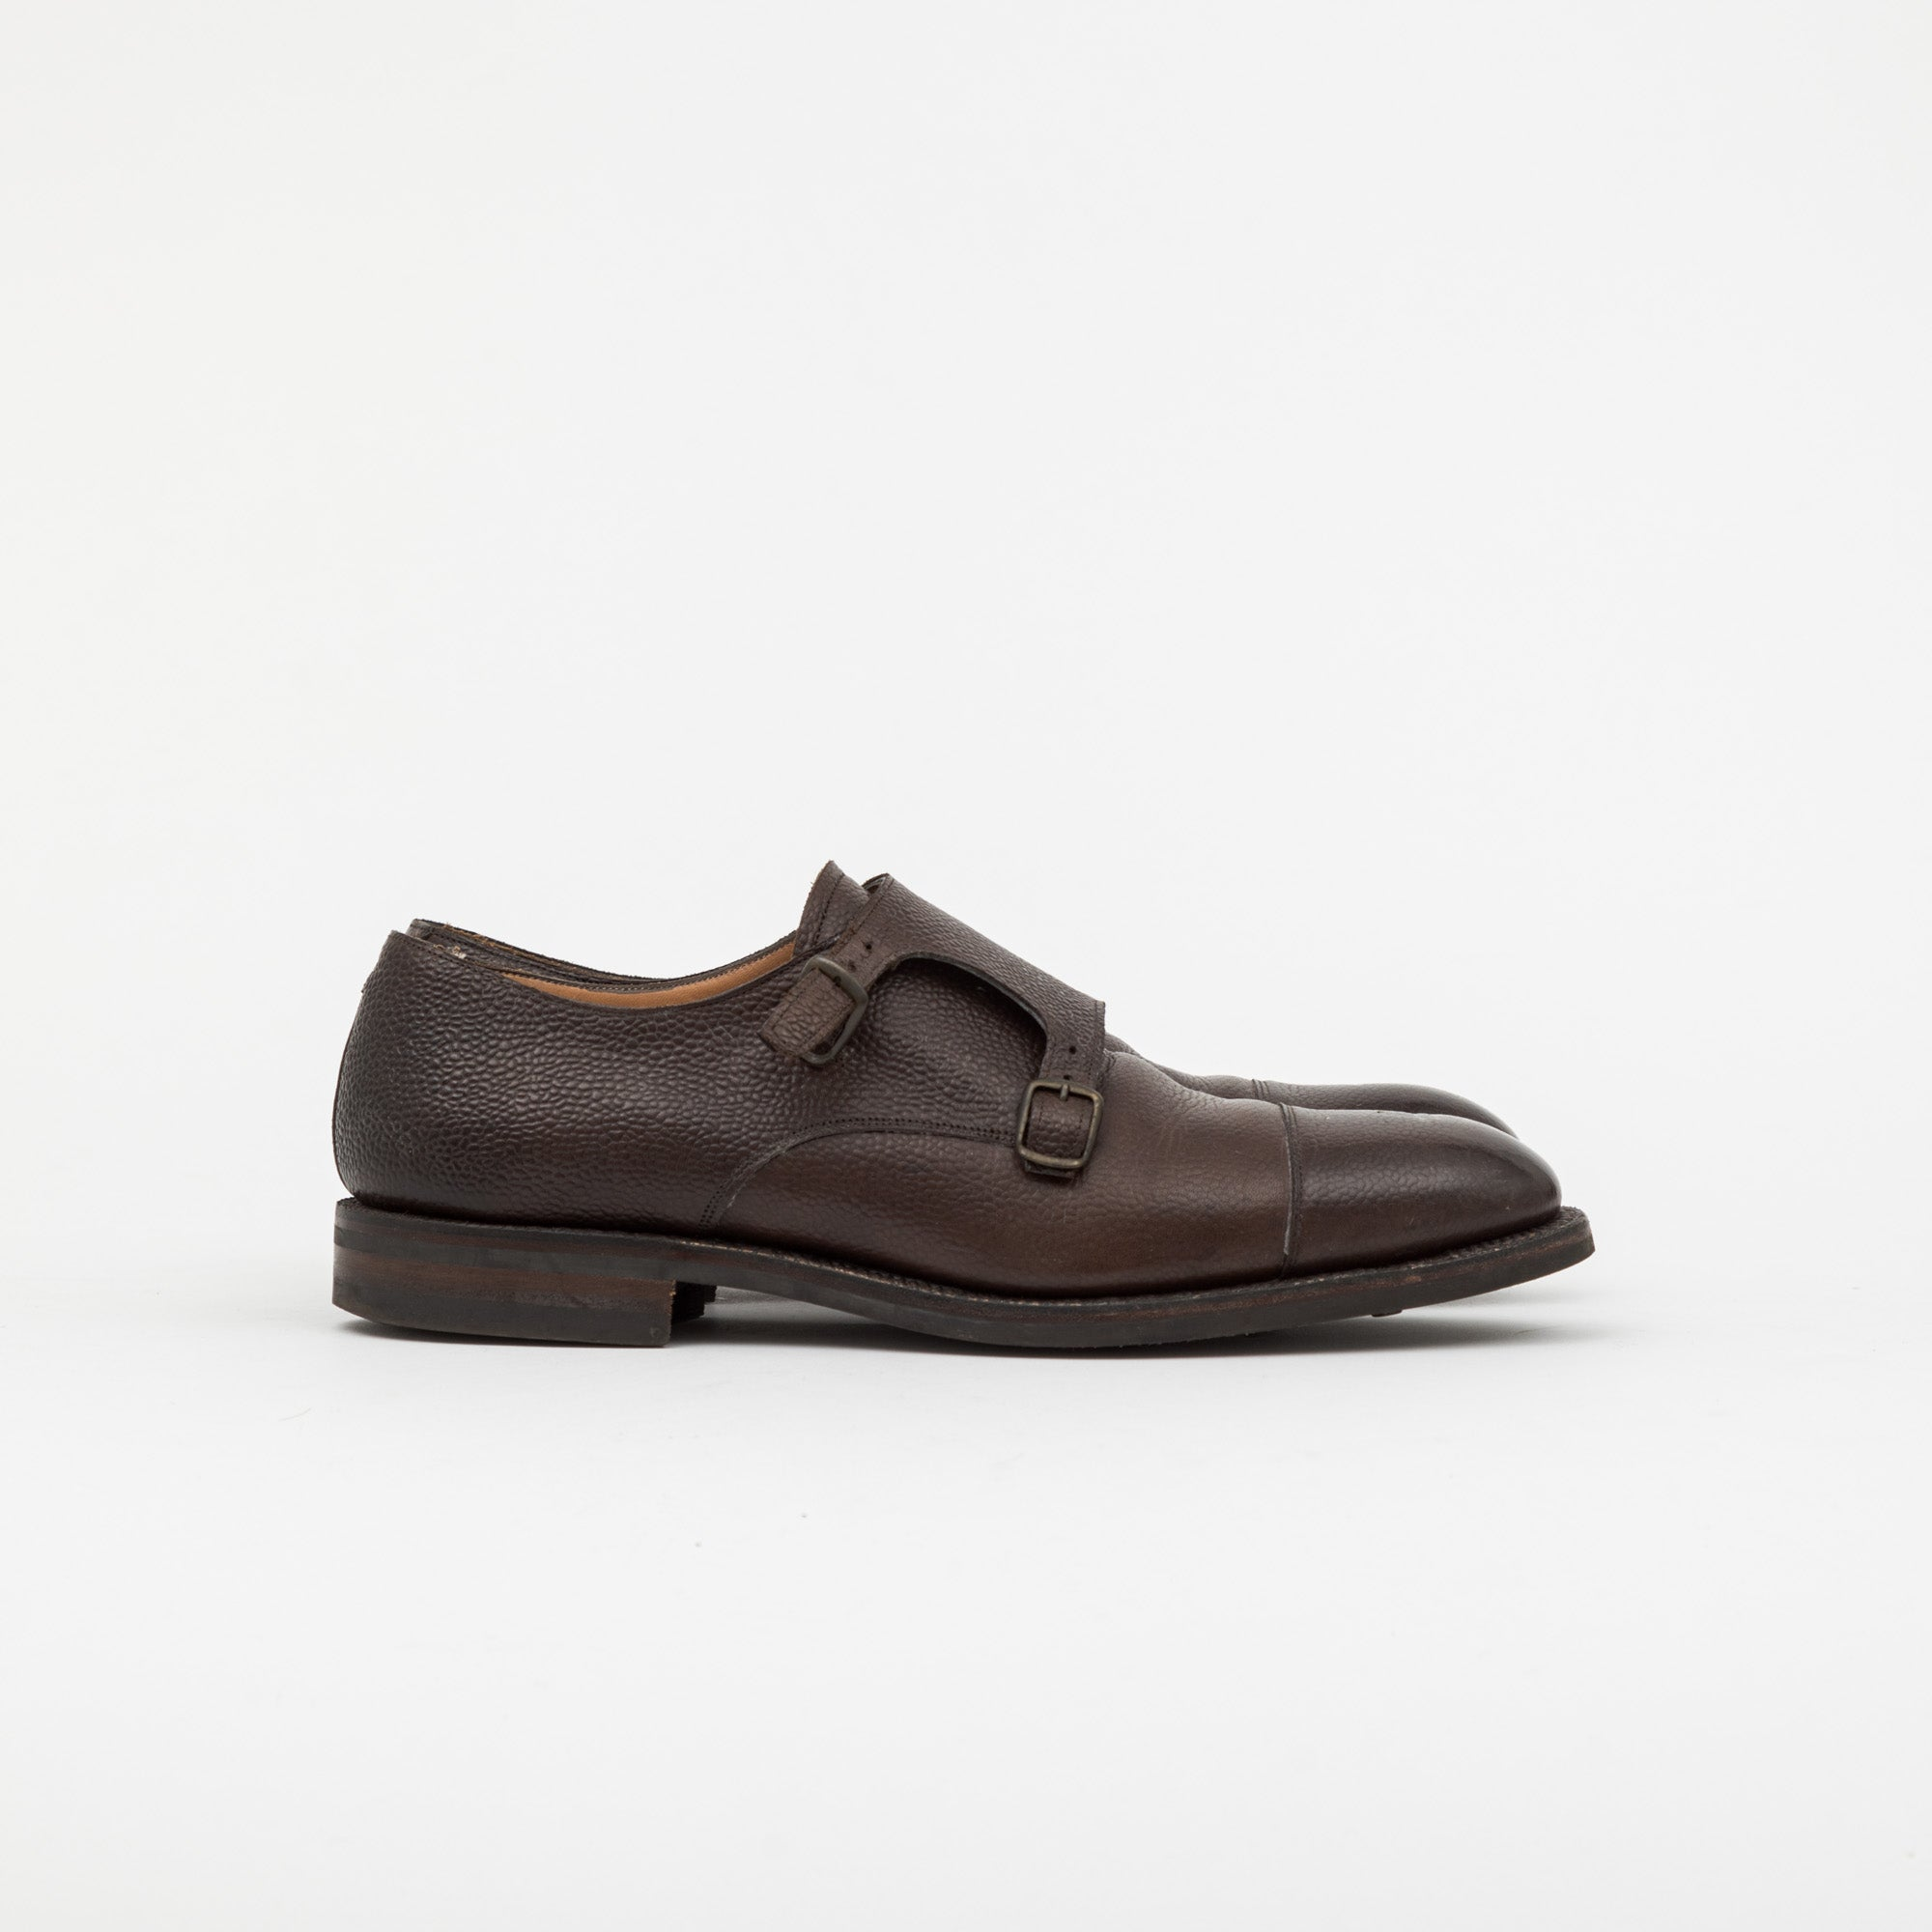 Joseph Cheaney & Sons Holyrood Double Monk Shoe